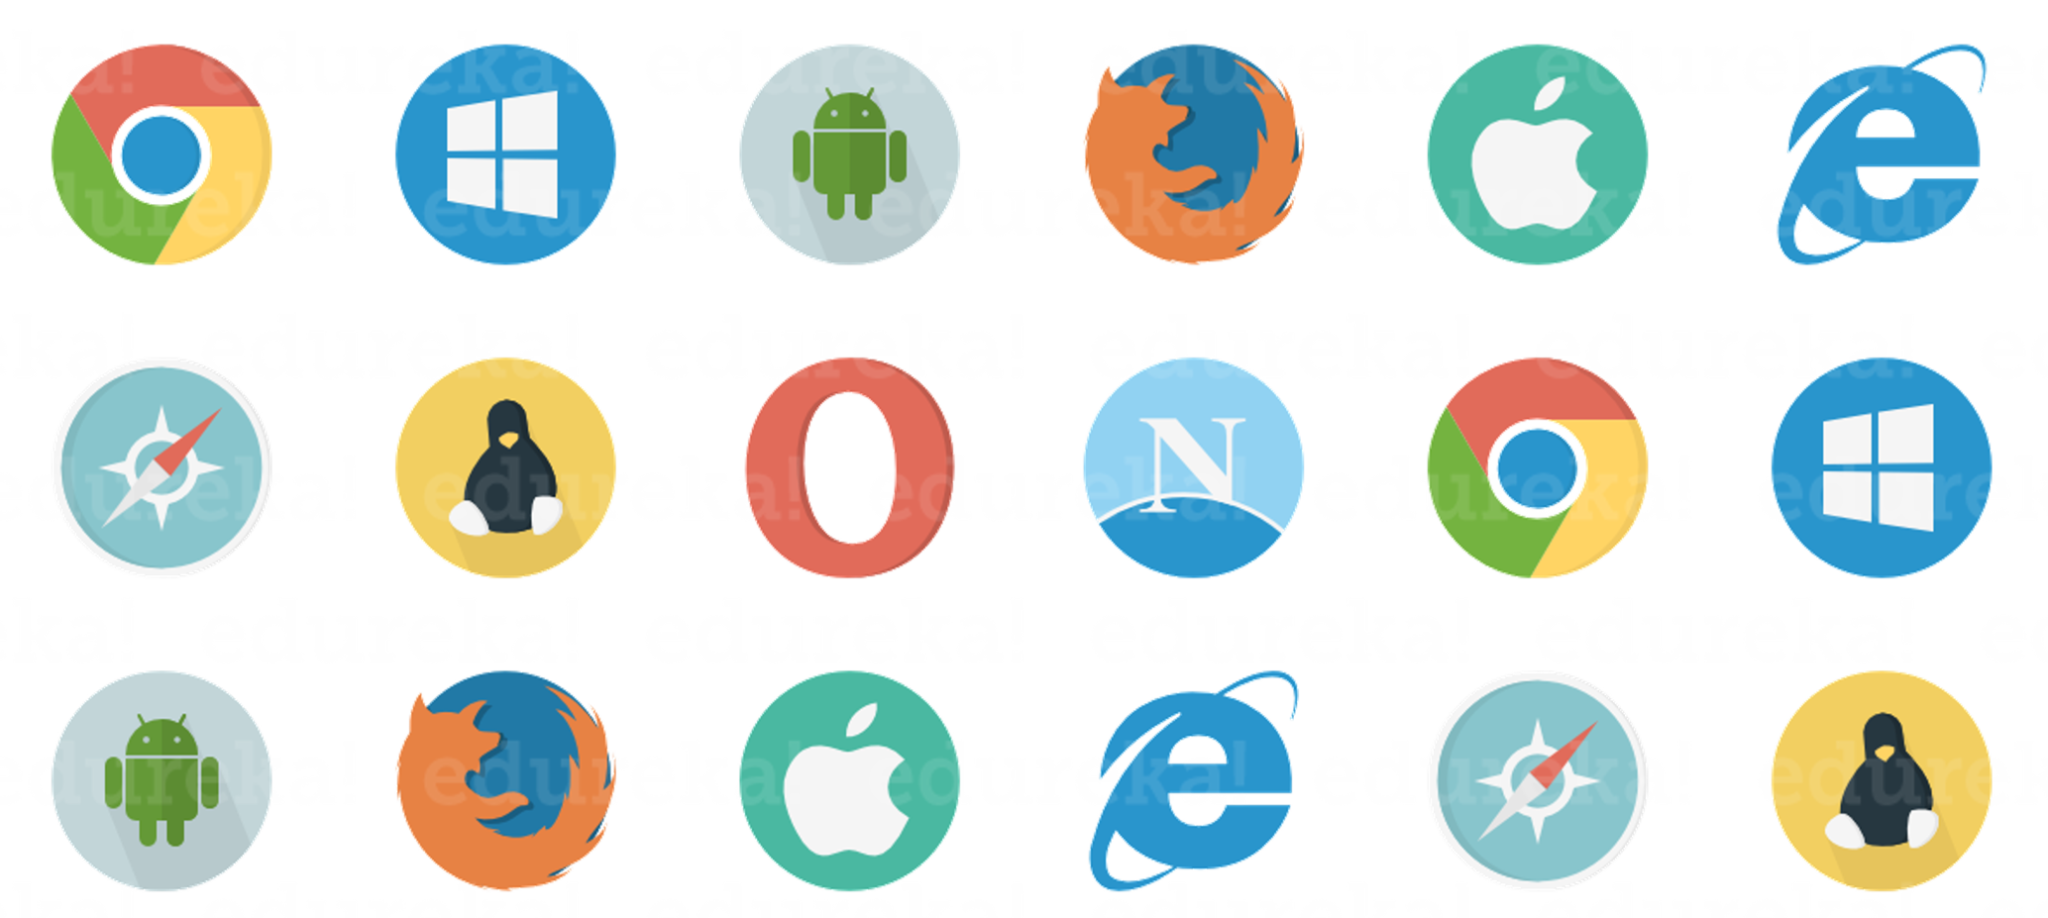 Cross Browser Compatibility - Cross Browser Testing - Edureka